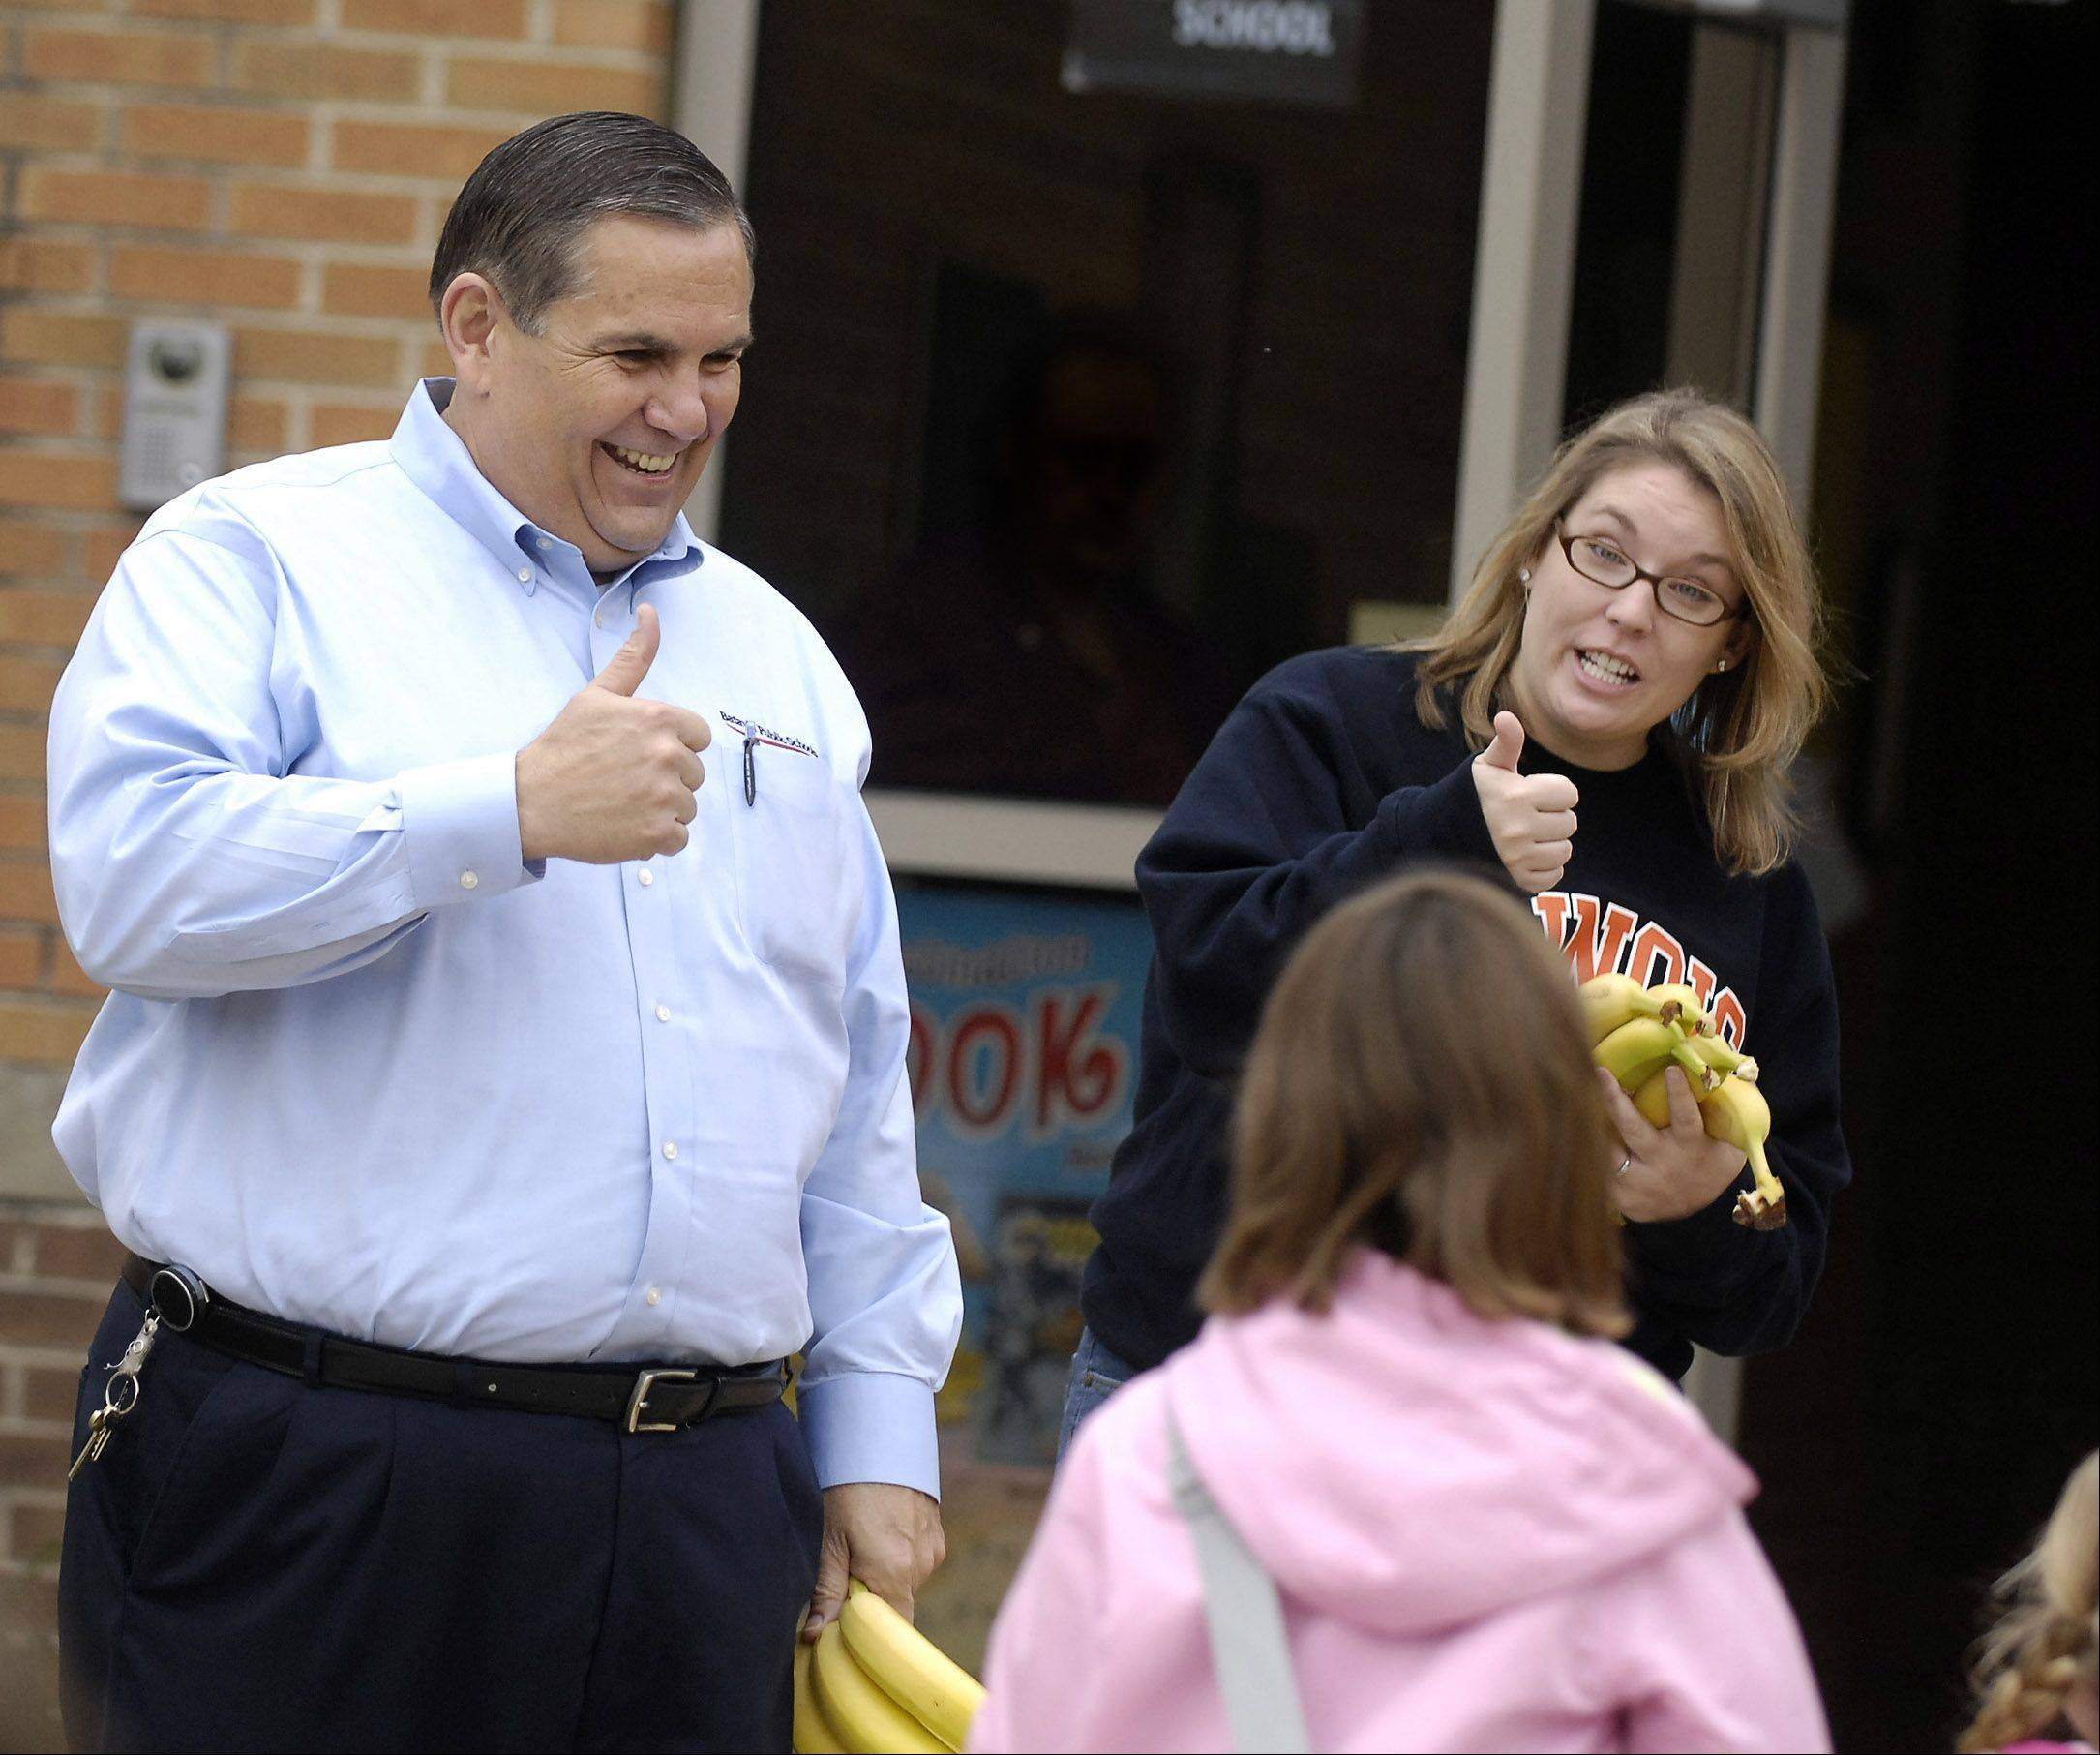 Batavia schools Superintendent Jack Barshinger and volunteer Jaime Schumacher gives the thumbs-up — and bananas — to Alice Gustafson Elementary School students who walked or biked to school in honor of International Walk to School month, in 2009. Barshinger announced Monday he will retire at the end of the school year.